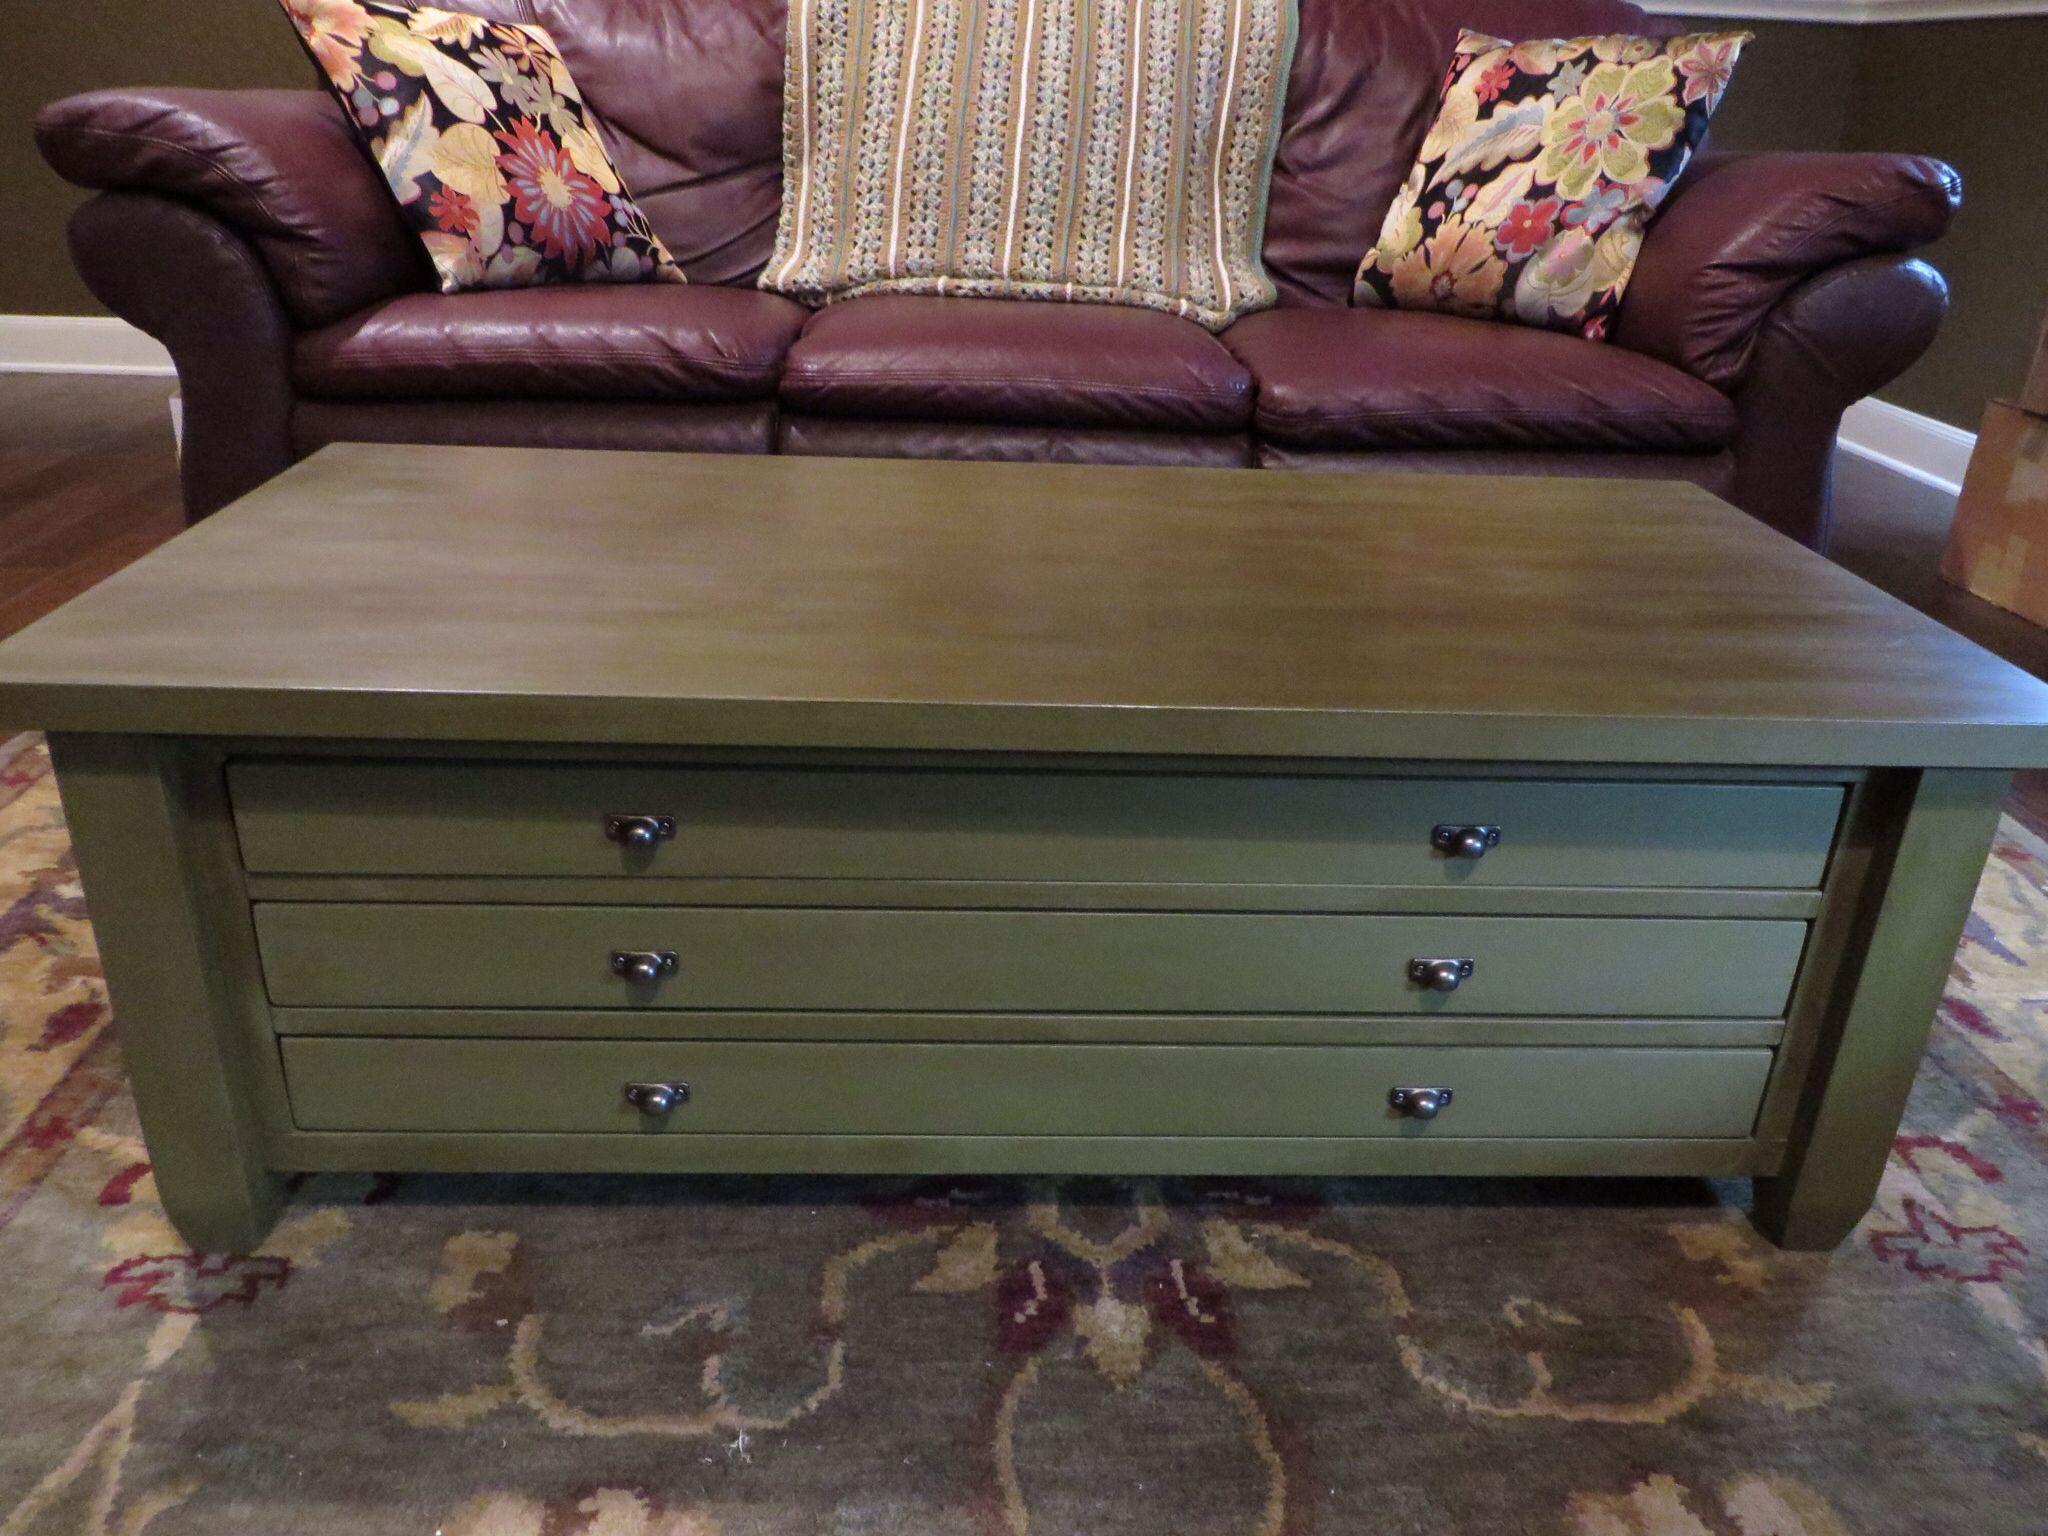 Chalk Painted My Coffee Table Olive Green With Dark Wax A Large